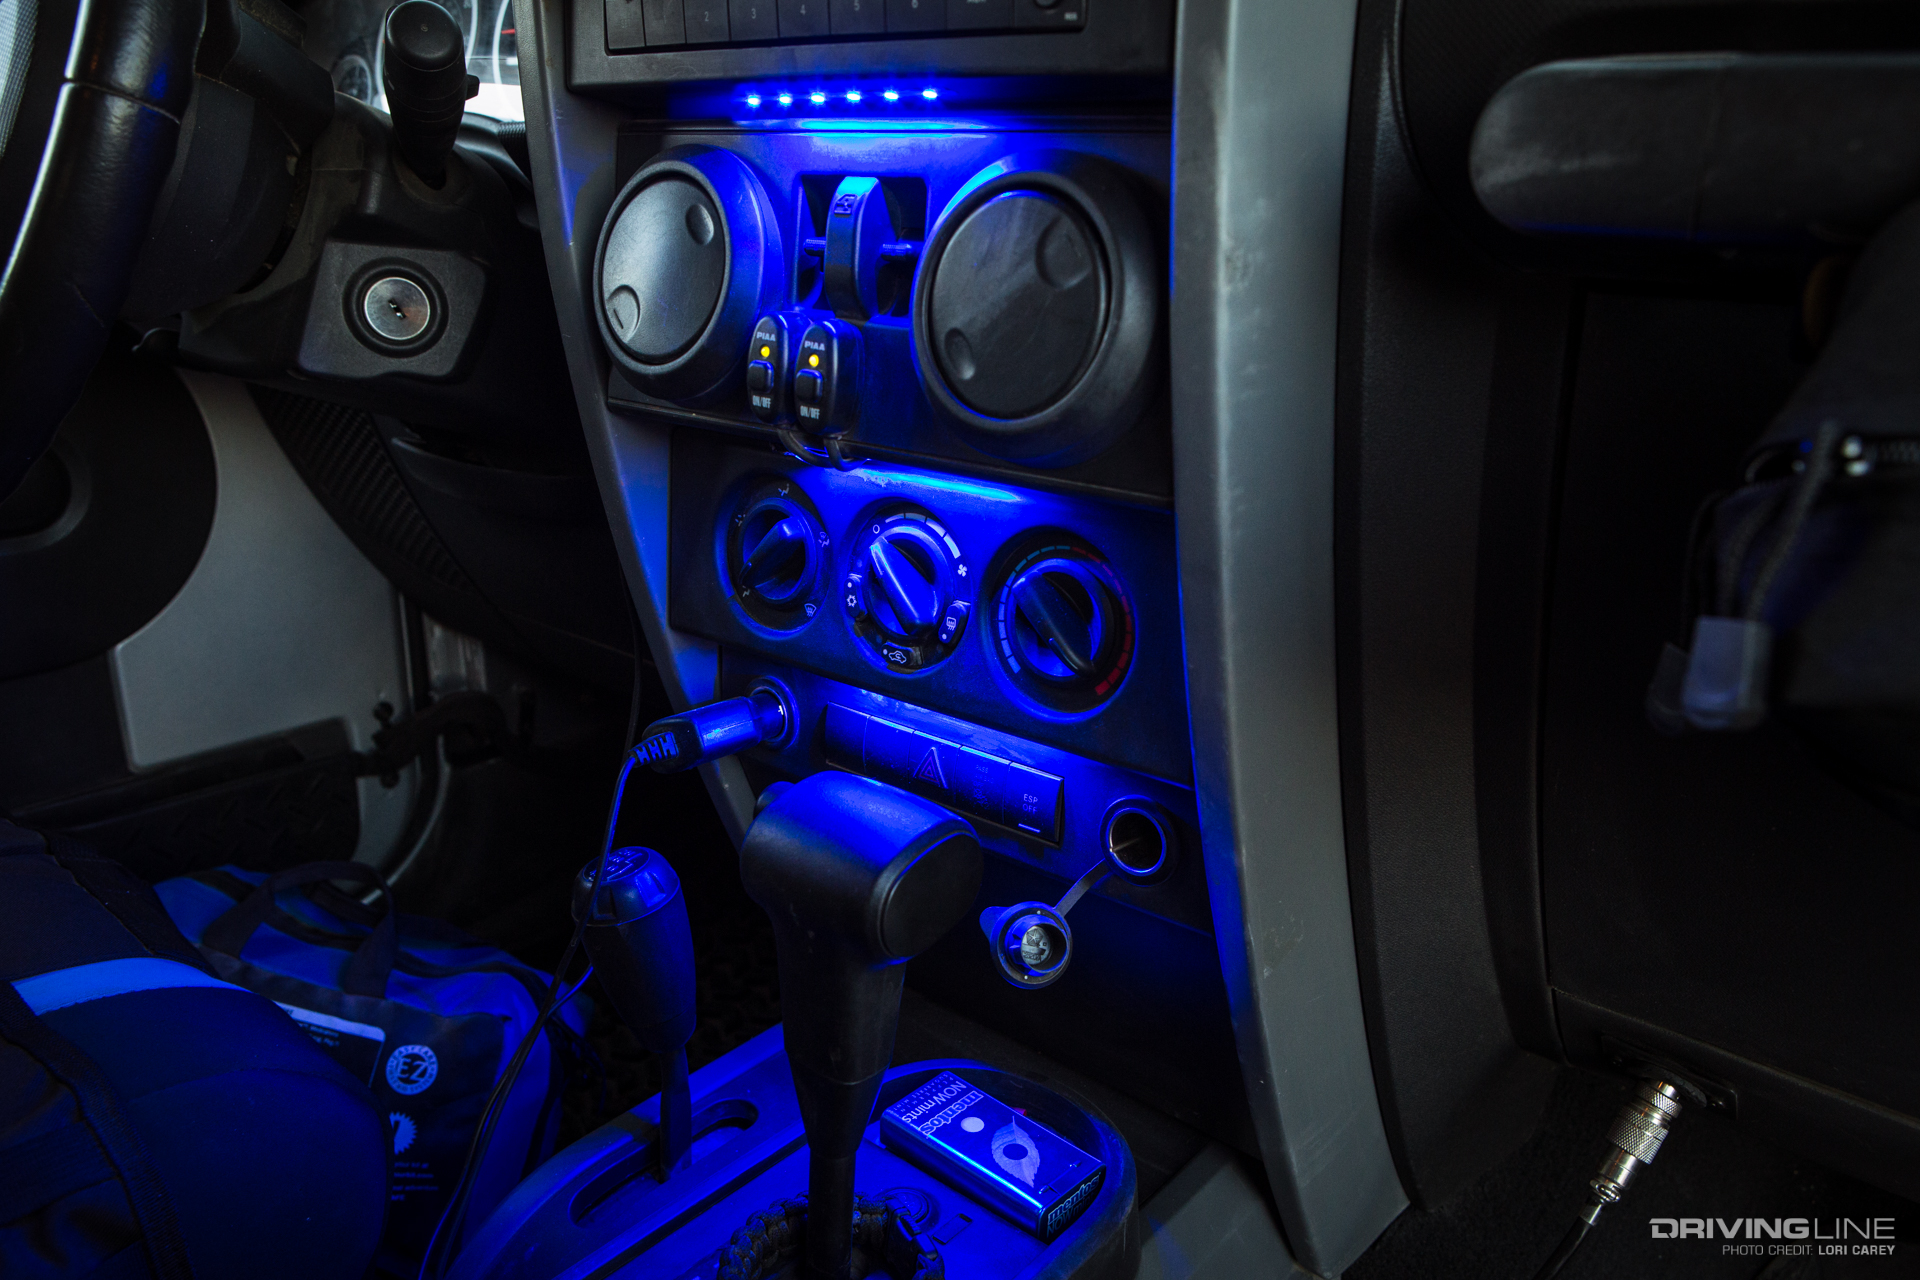 Diesel Jeep Wrangler >> How to Customize Your Ride With DIY LED Strip Lighting ...